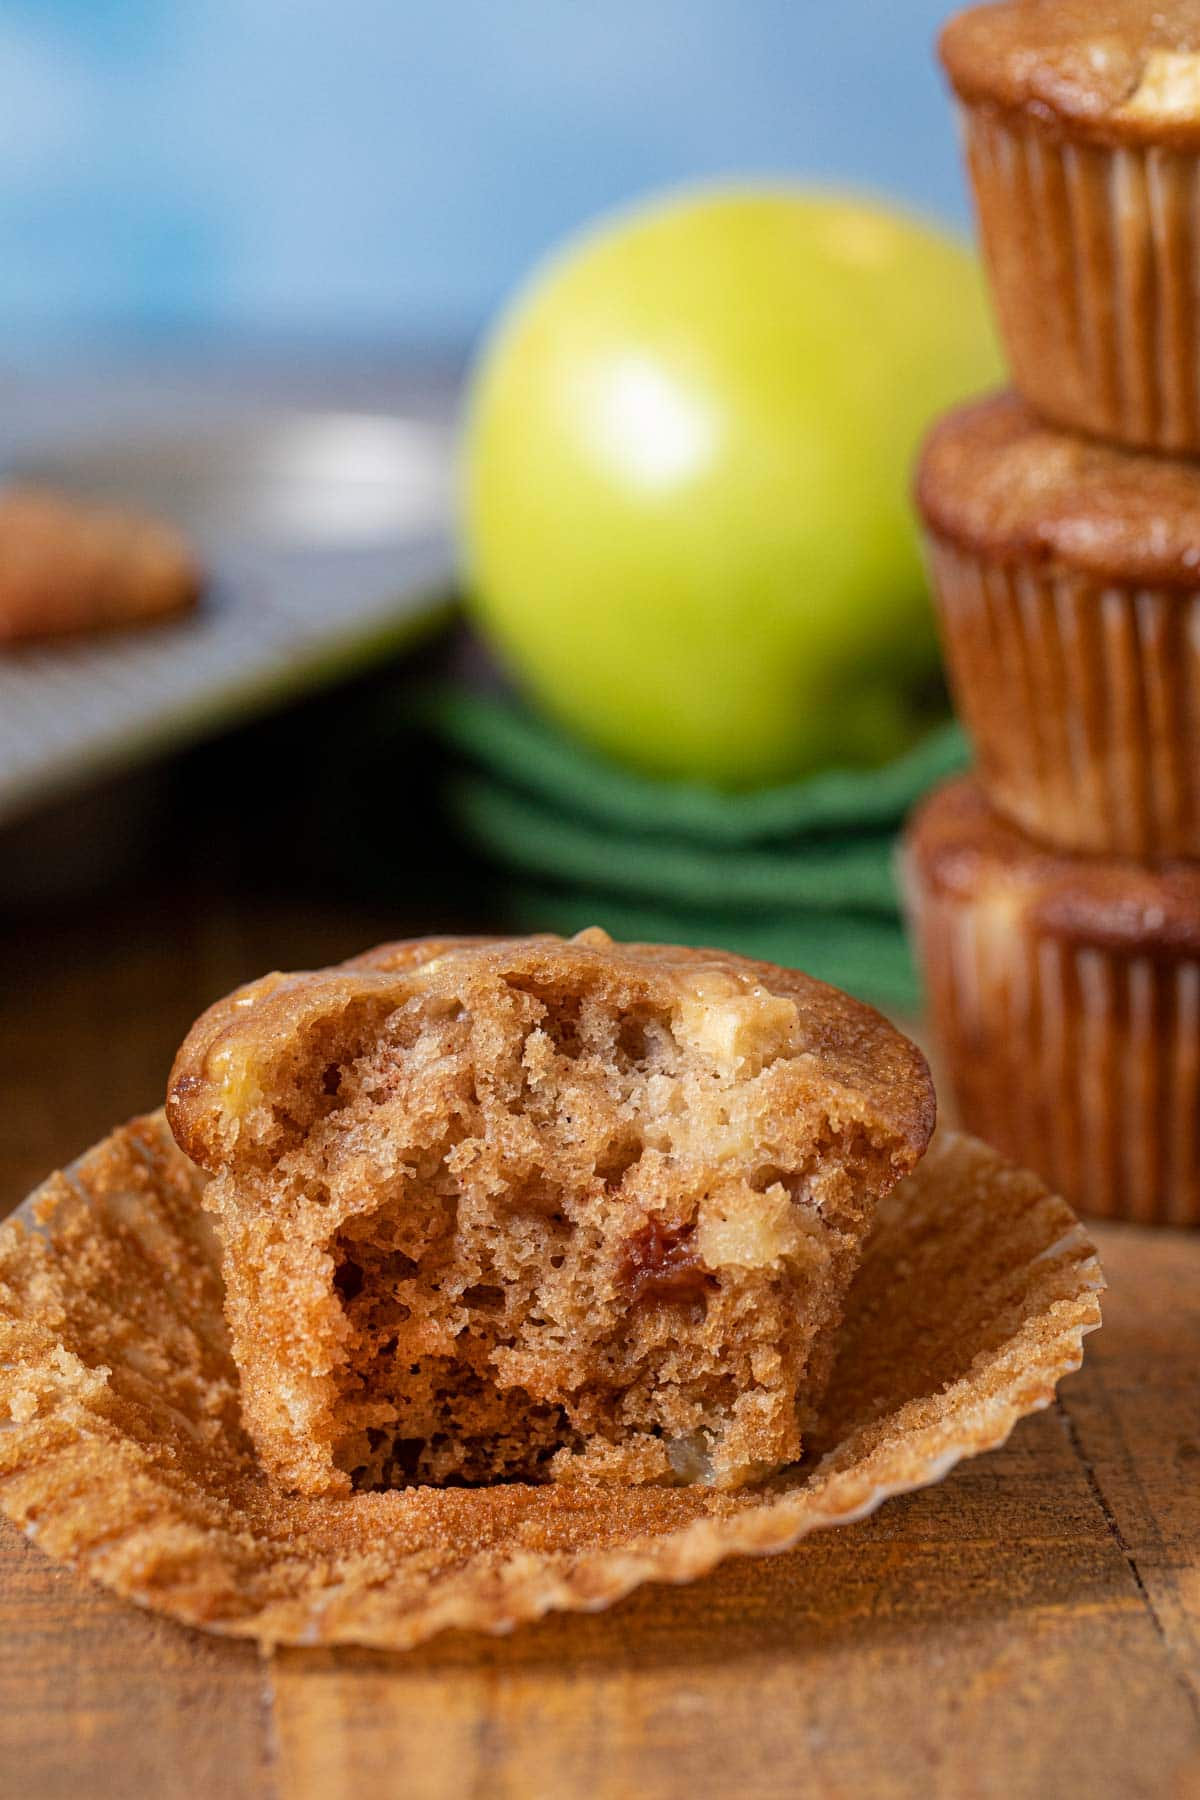 Apple Muffin with bite taken